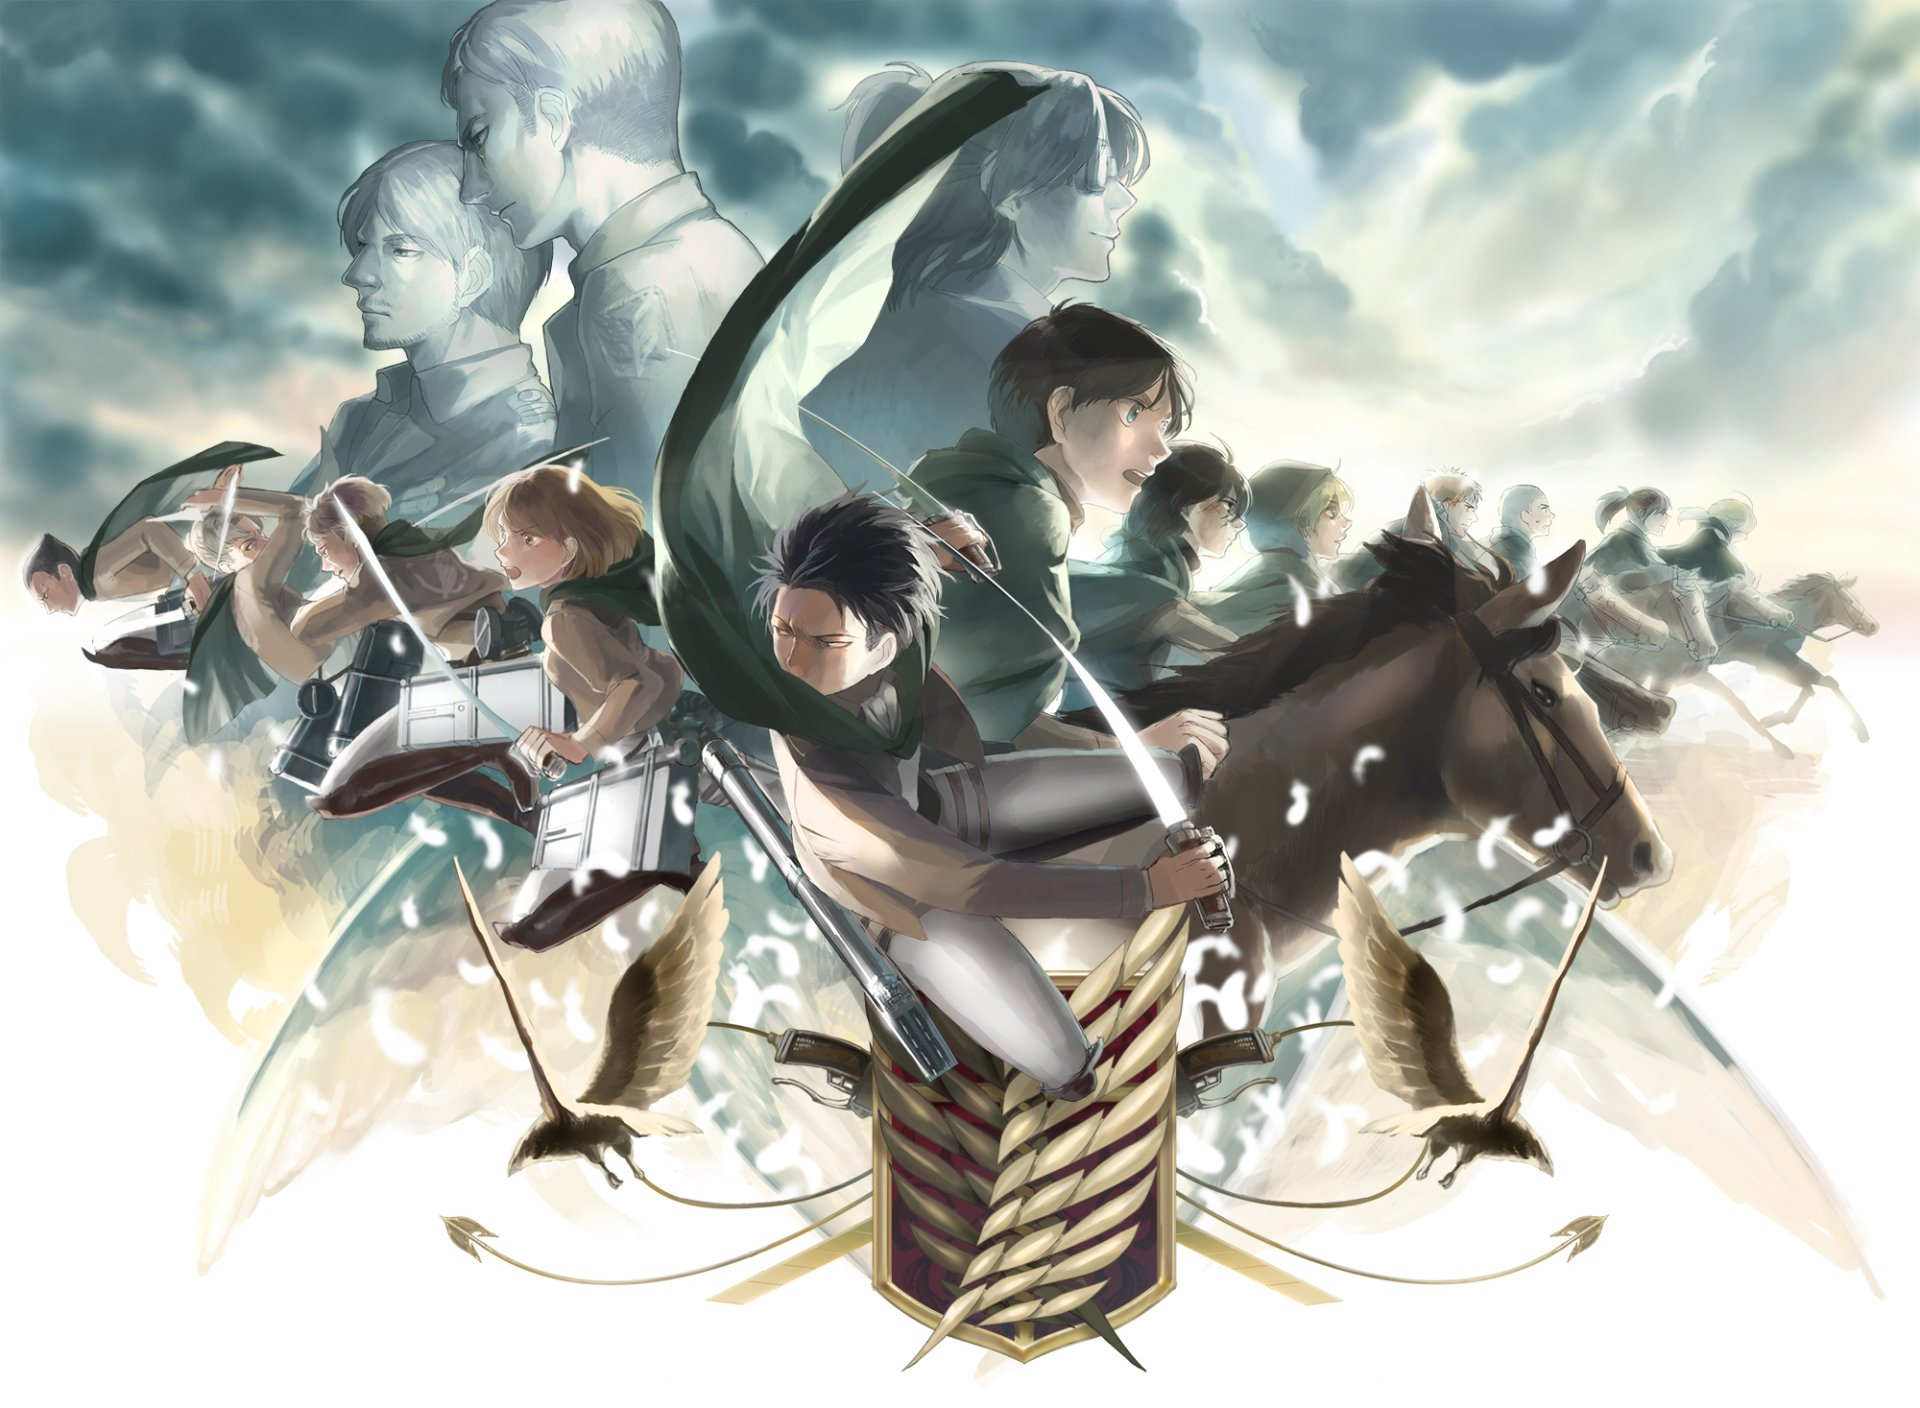 Anime - Attack On Titan  Erwin Smith Hange Zoë Sasha Blouse Historia Reiss Connie Springer Armin Arlert Eld Jinn Oluo Bozado Jean Kirstein Mikasa Ackerman Gunther Schultz Petra Ral Eren Yeager Levi Ackerman Wallpaper